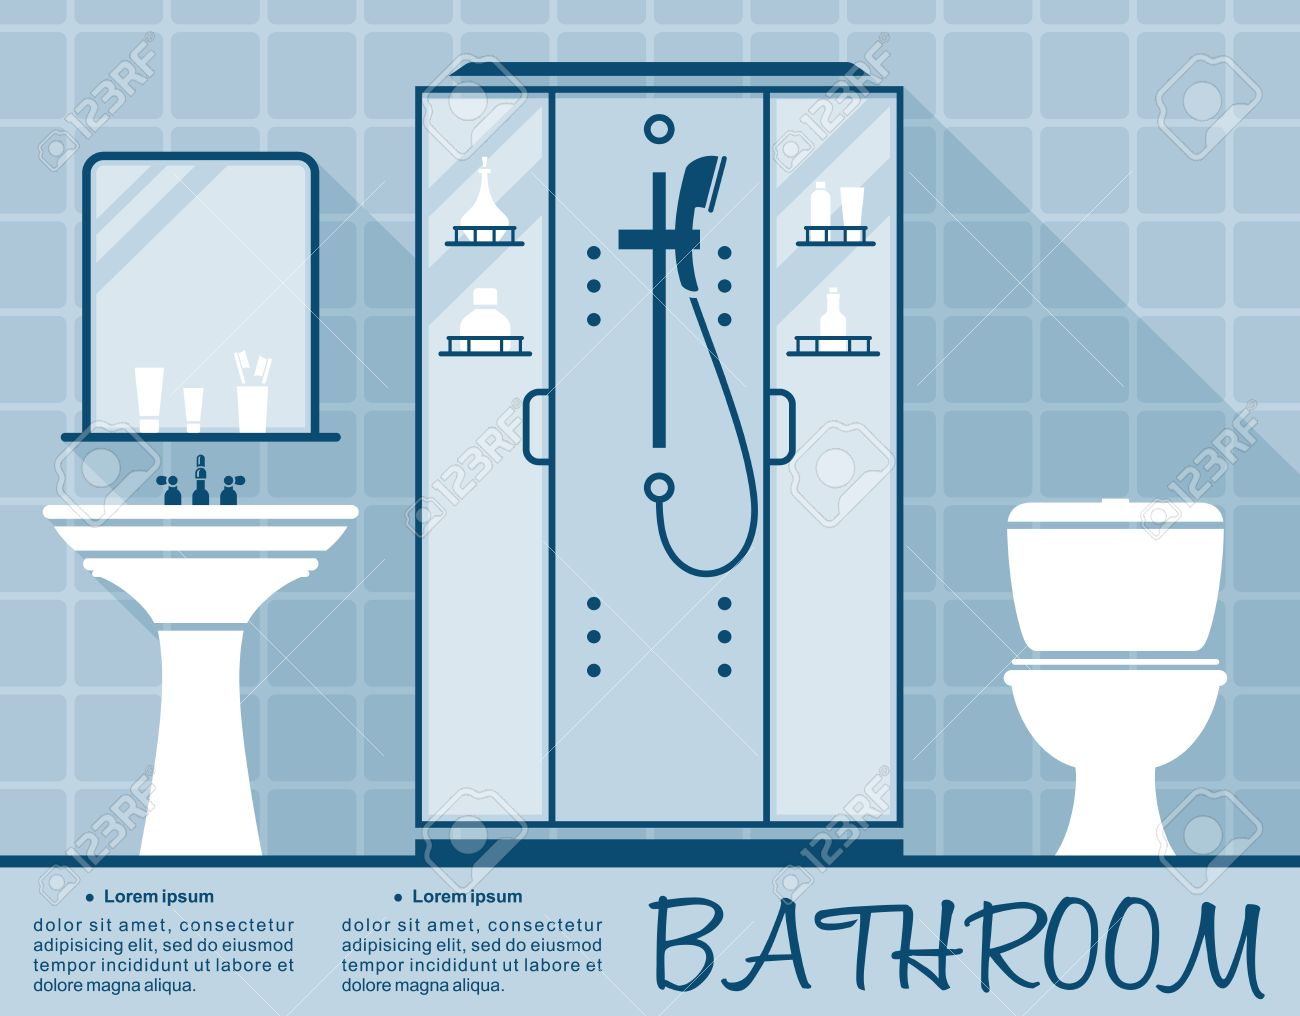 Charmant Bathroom Design Infographic Template In Flat Style In Shades Of Blue Of A  Bathroom Interior With